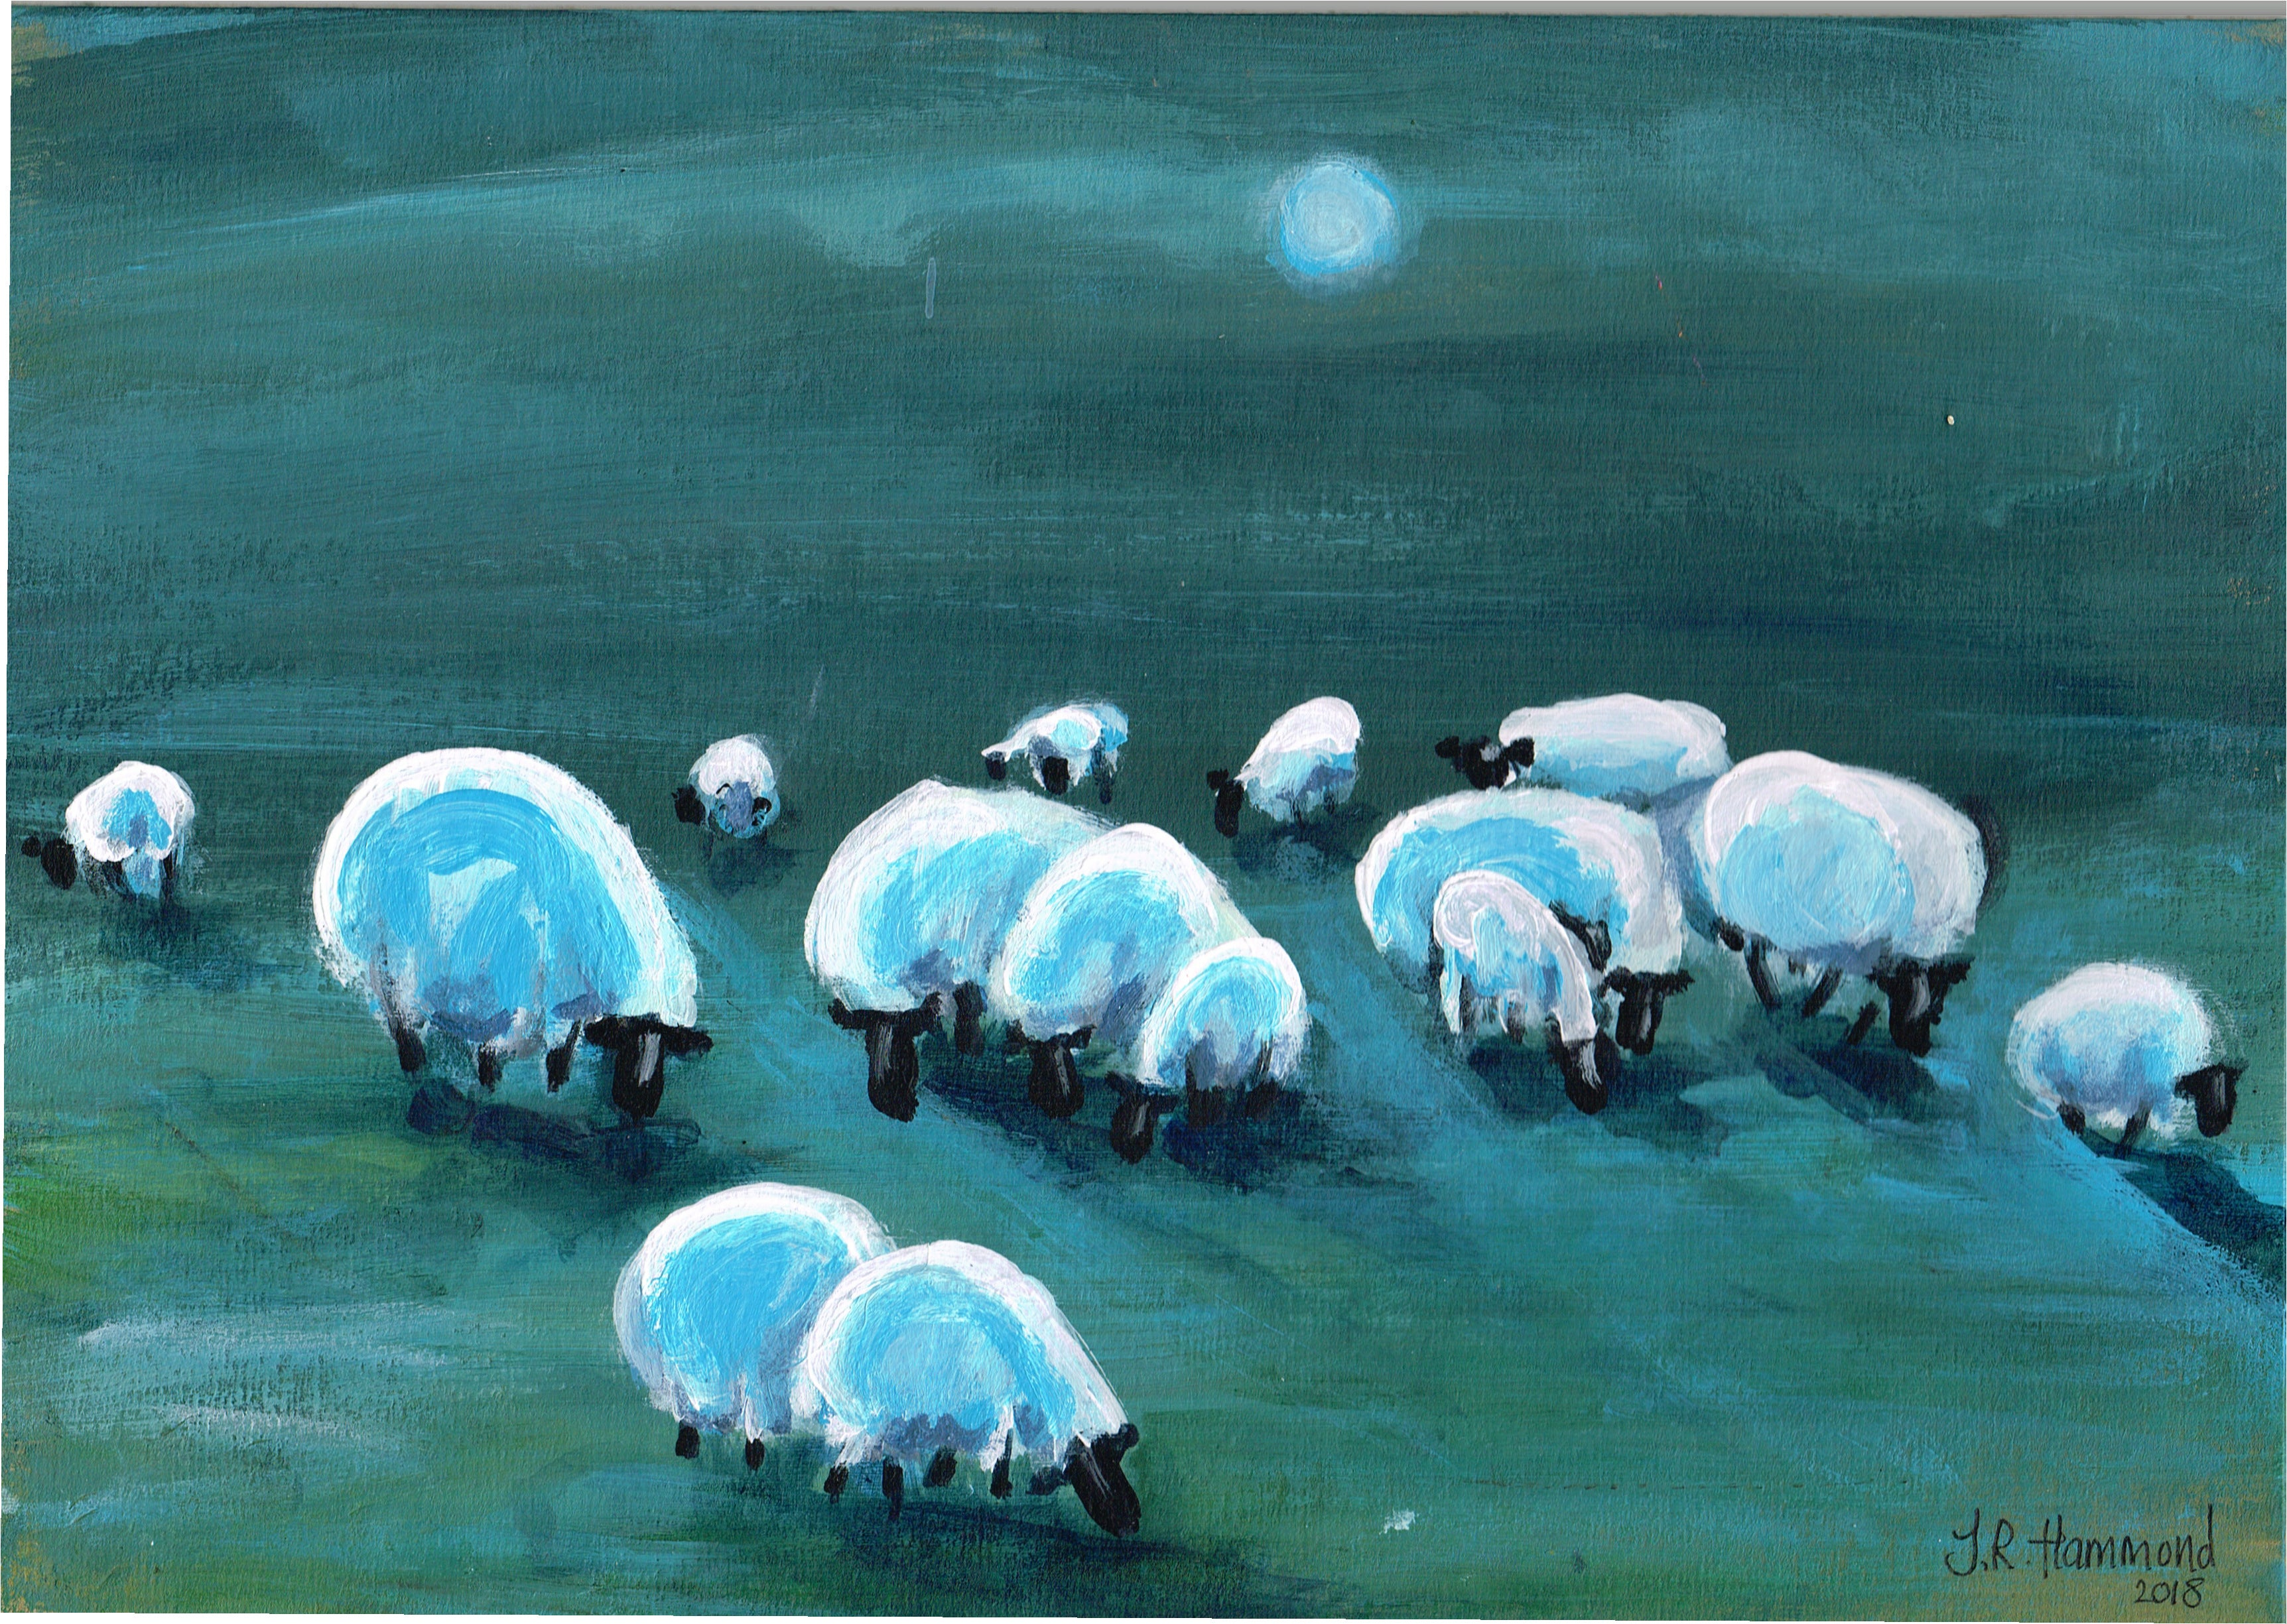 At Night I Dream of Acrylic Sheep Painting - Three (sold)  Smart Deco Homeware Lighting and Art by Jacqueline hammond